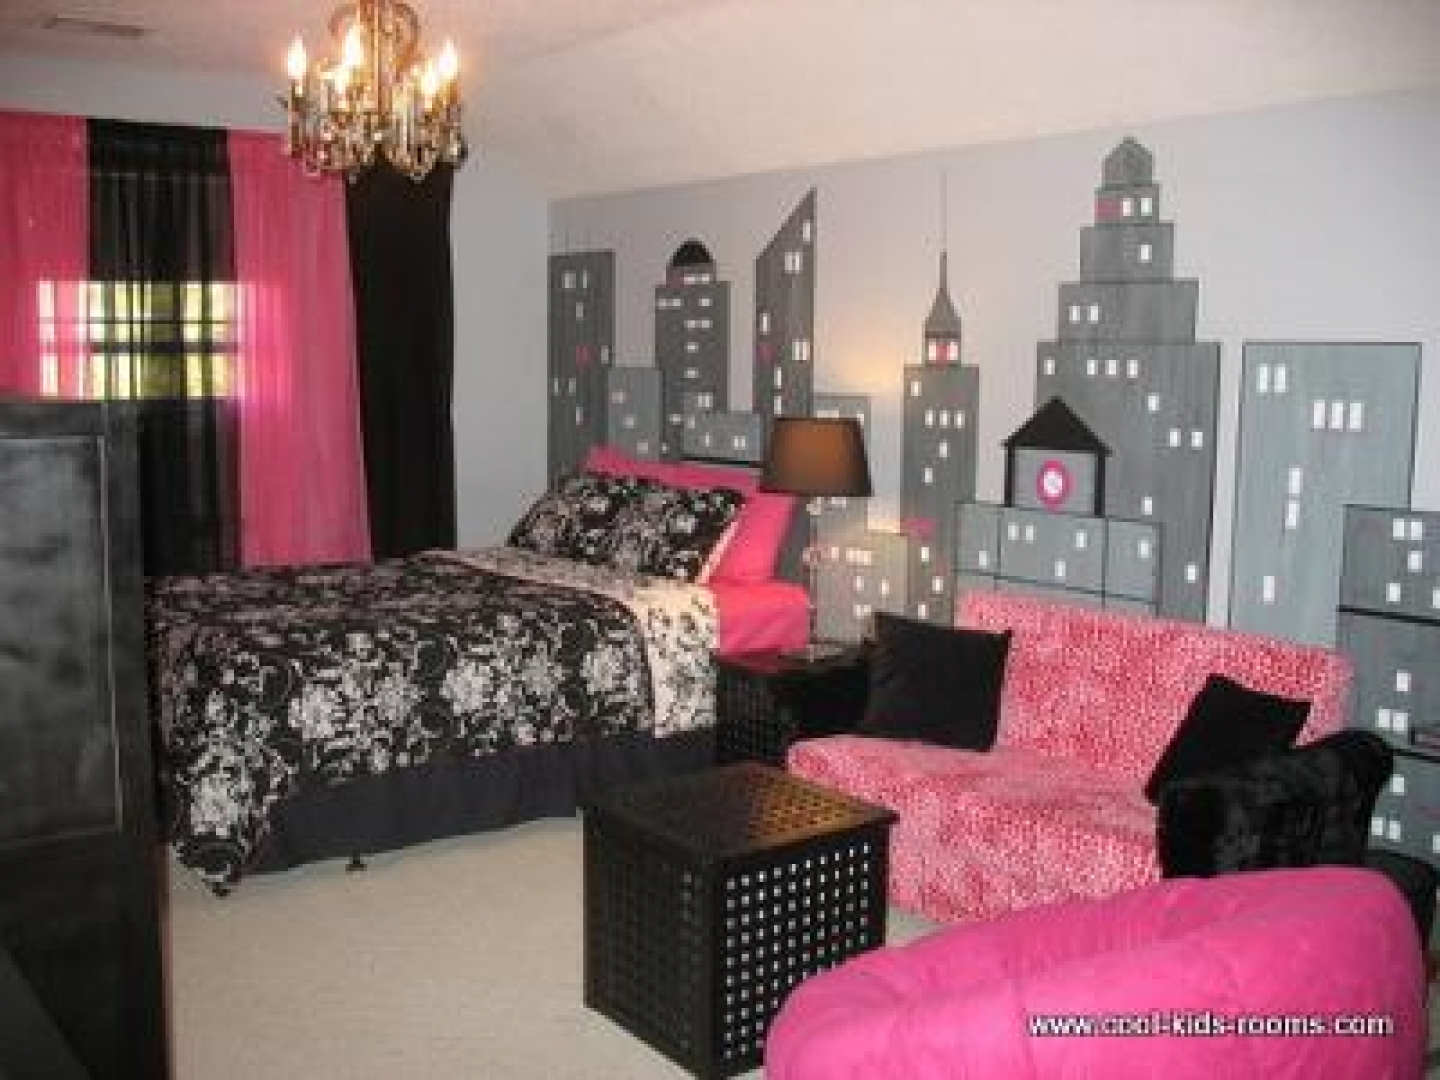 pink and black bedroom wallpaper pink and black bedroom wallpaper home design 19432